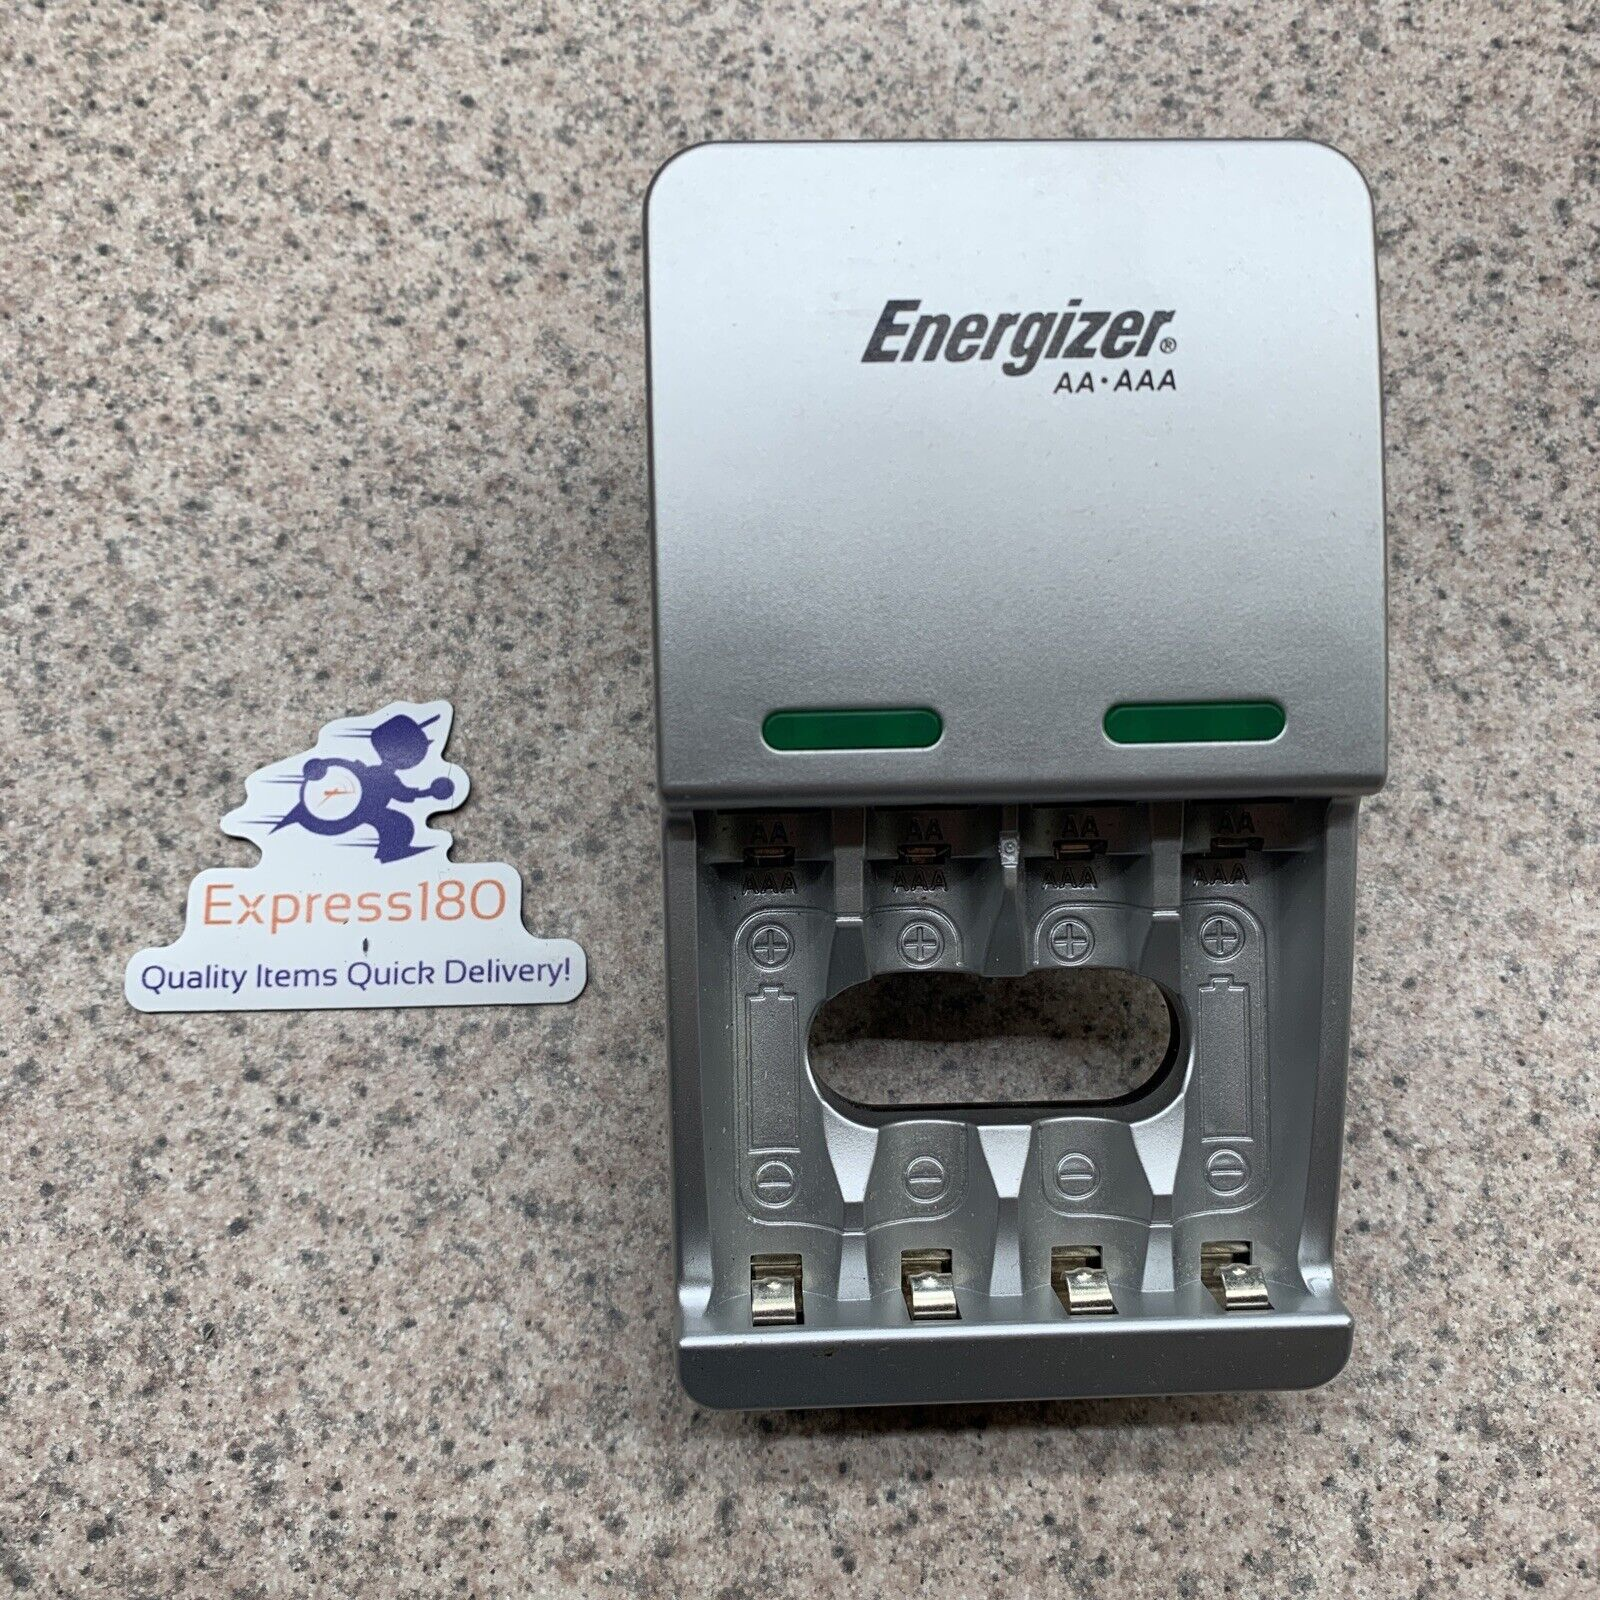 (HO) Energizer Battery Charger CHVCM for AA & AAA Free US Shipping